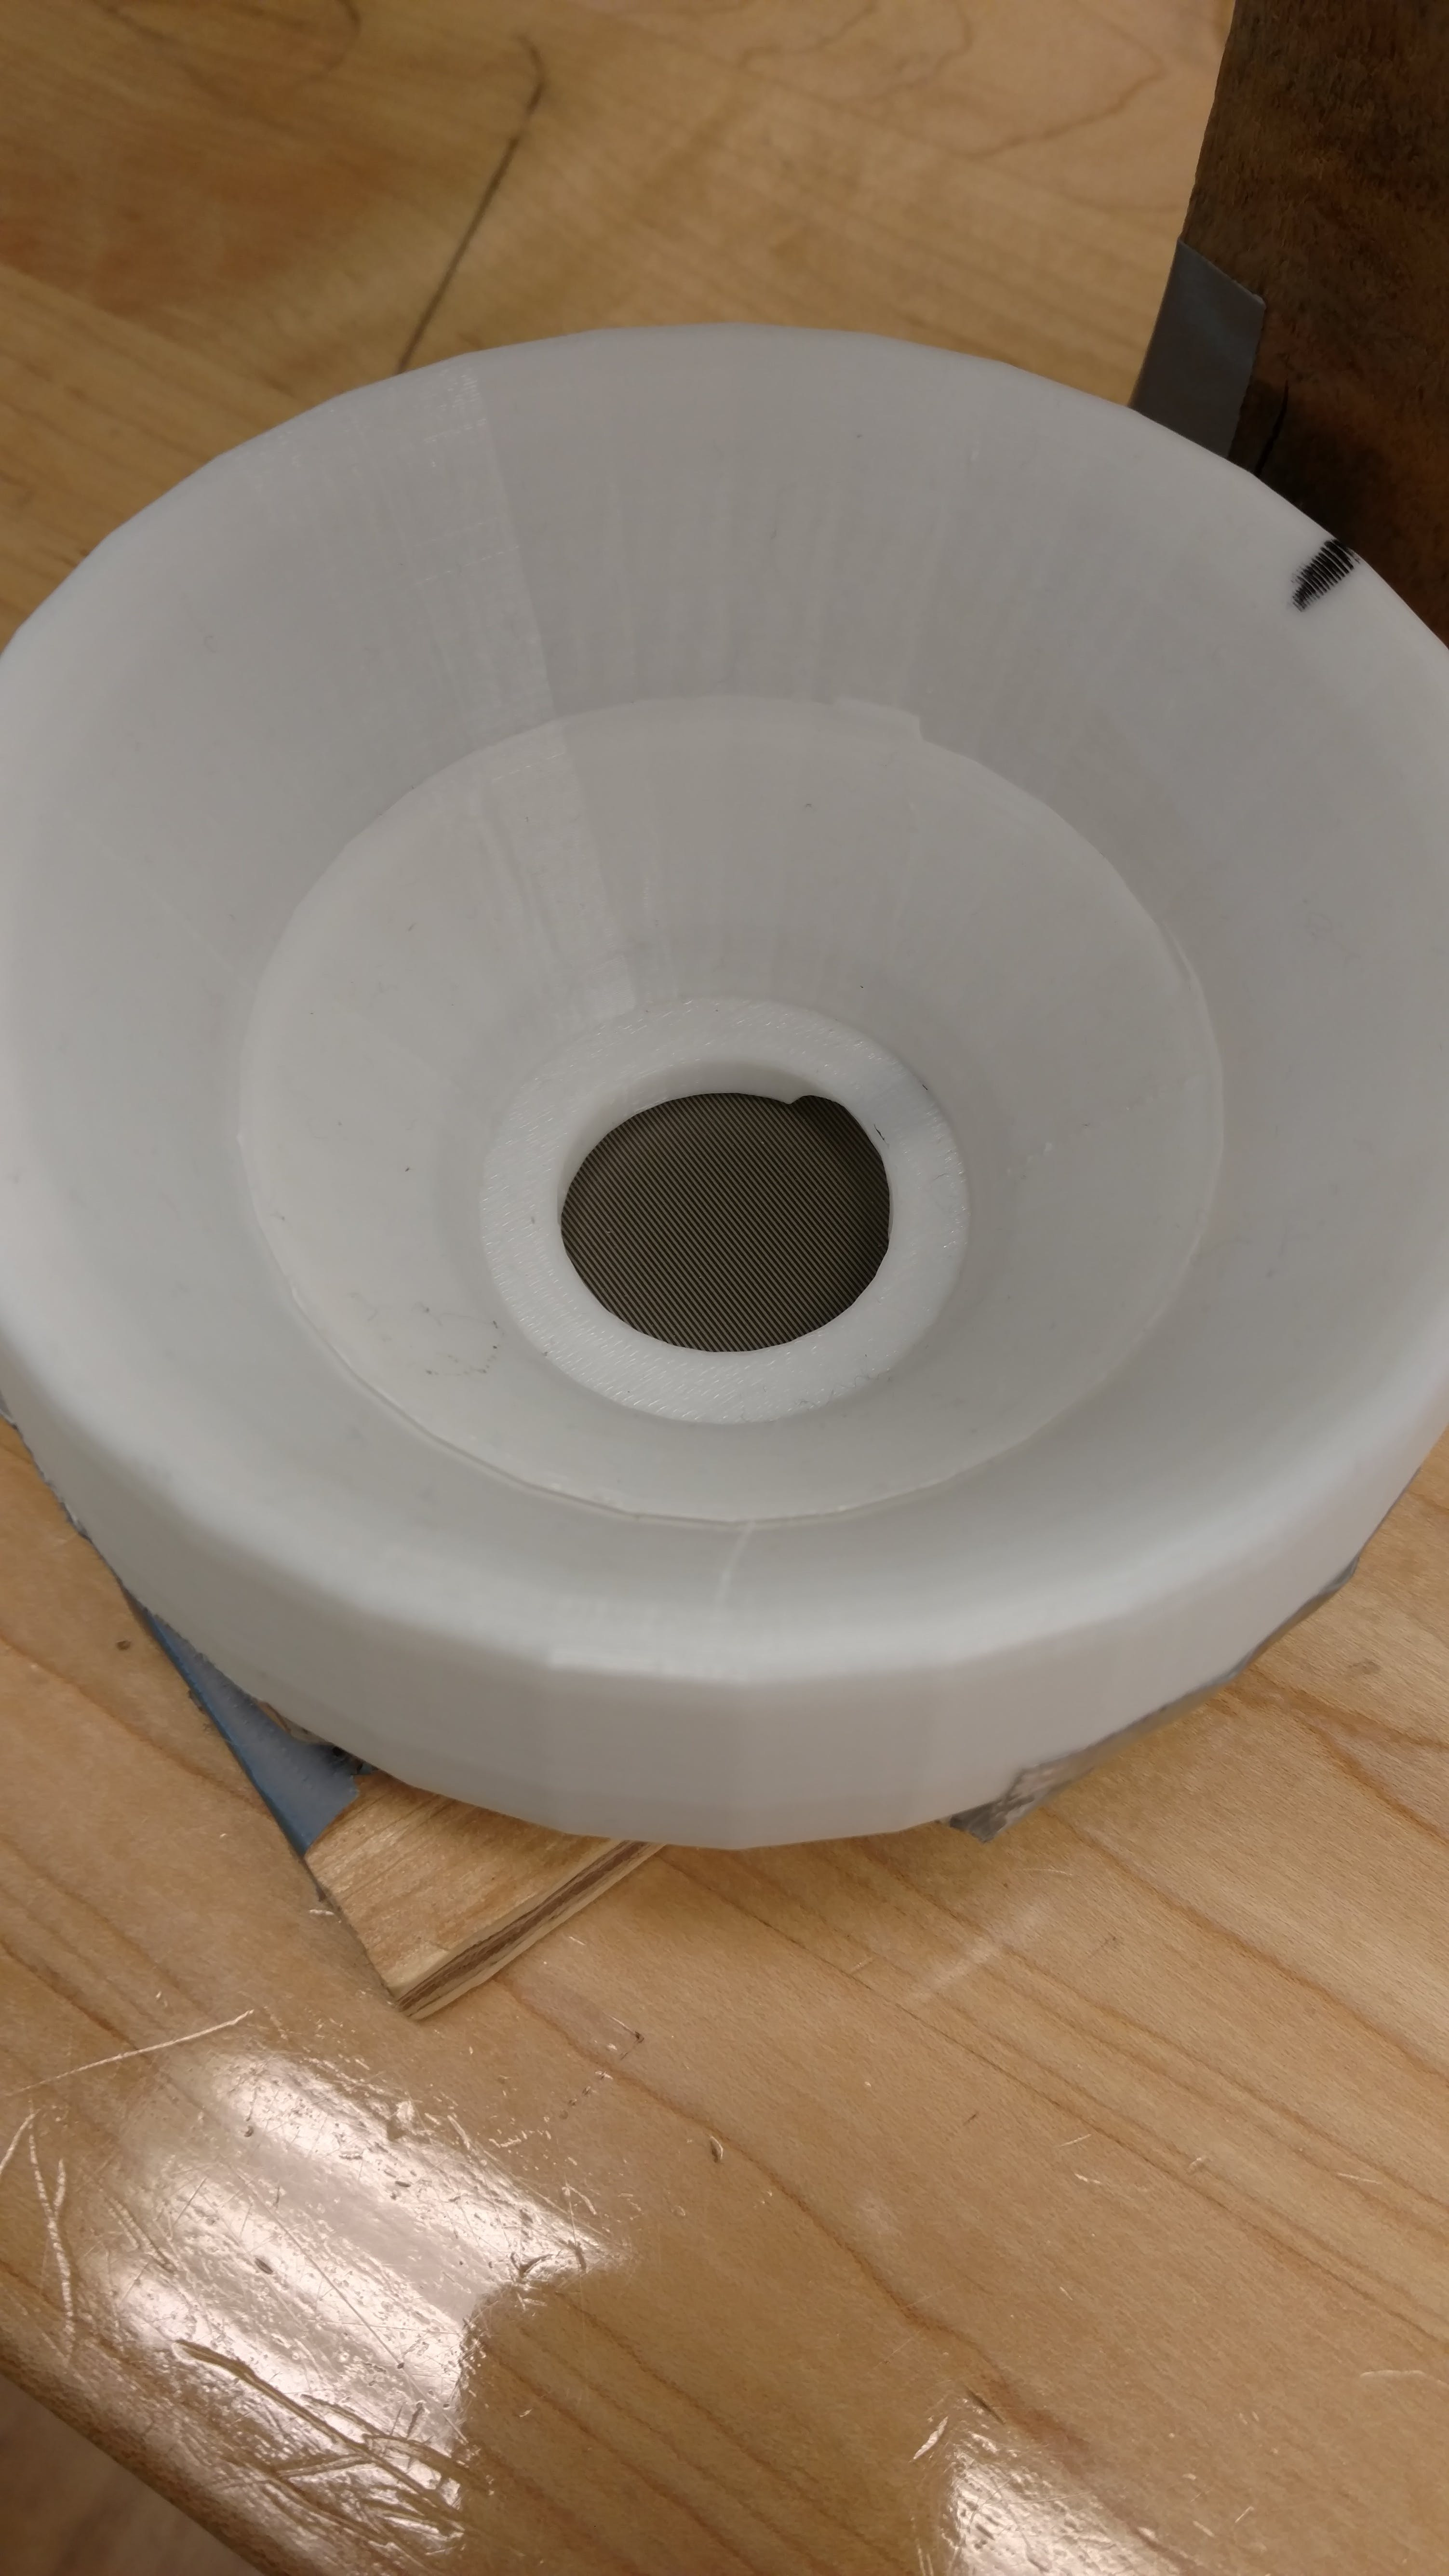 3D-Printed Bowl with a force sensor